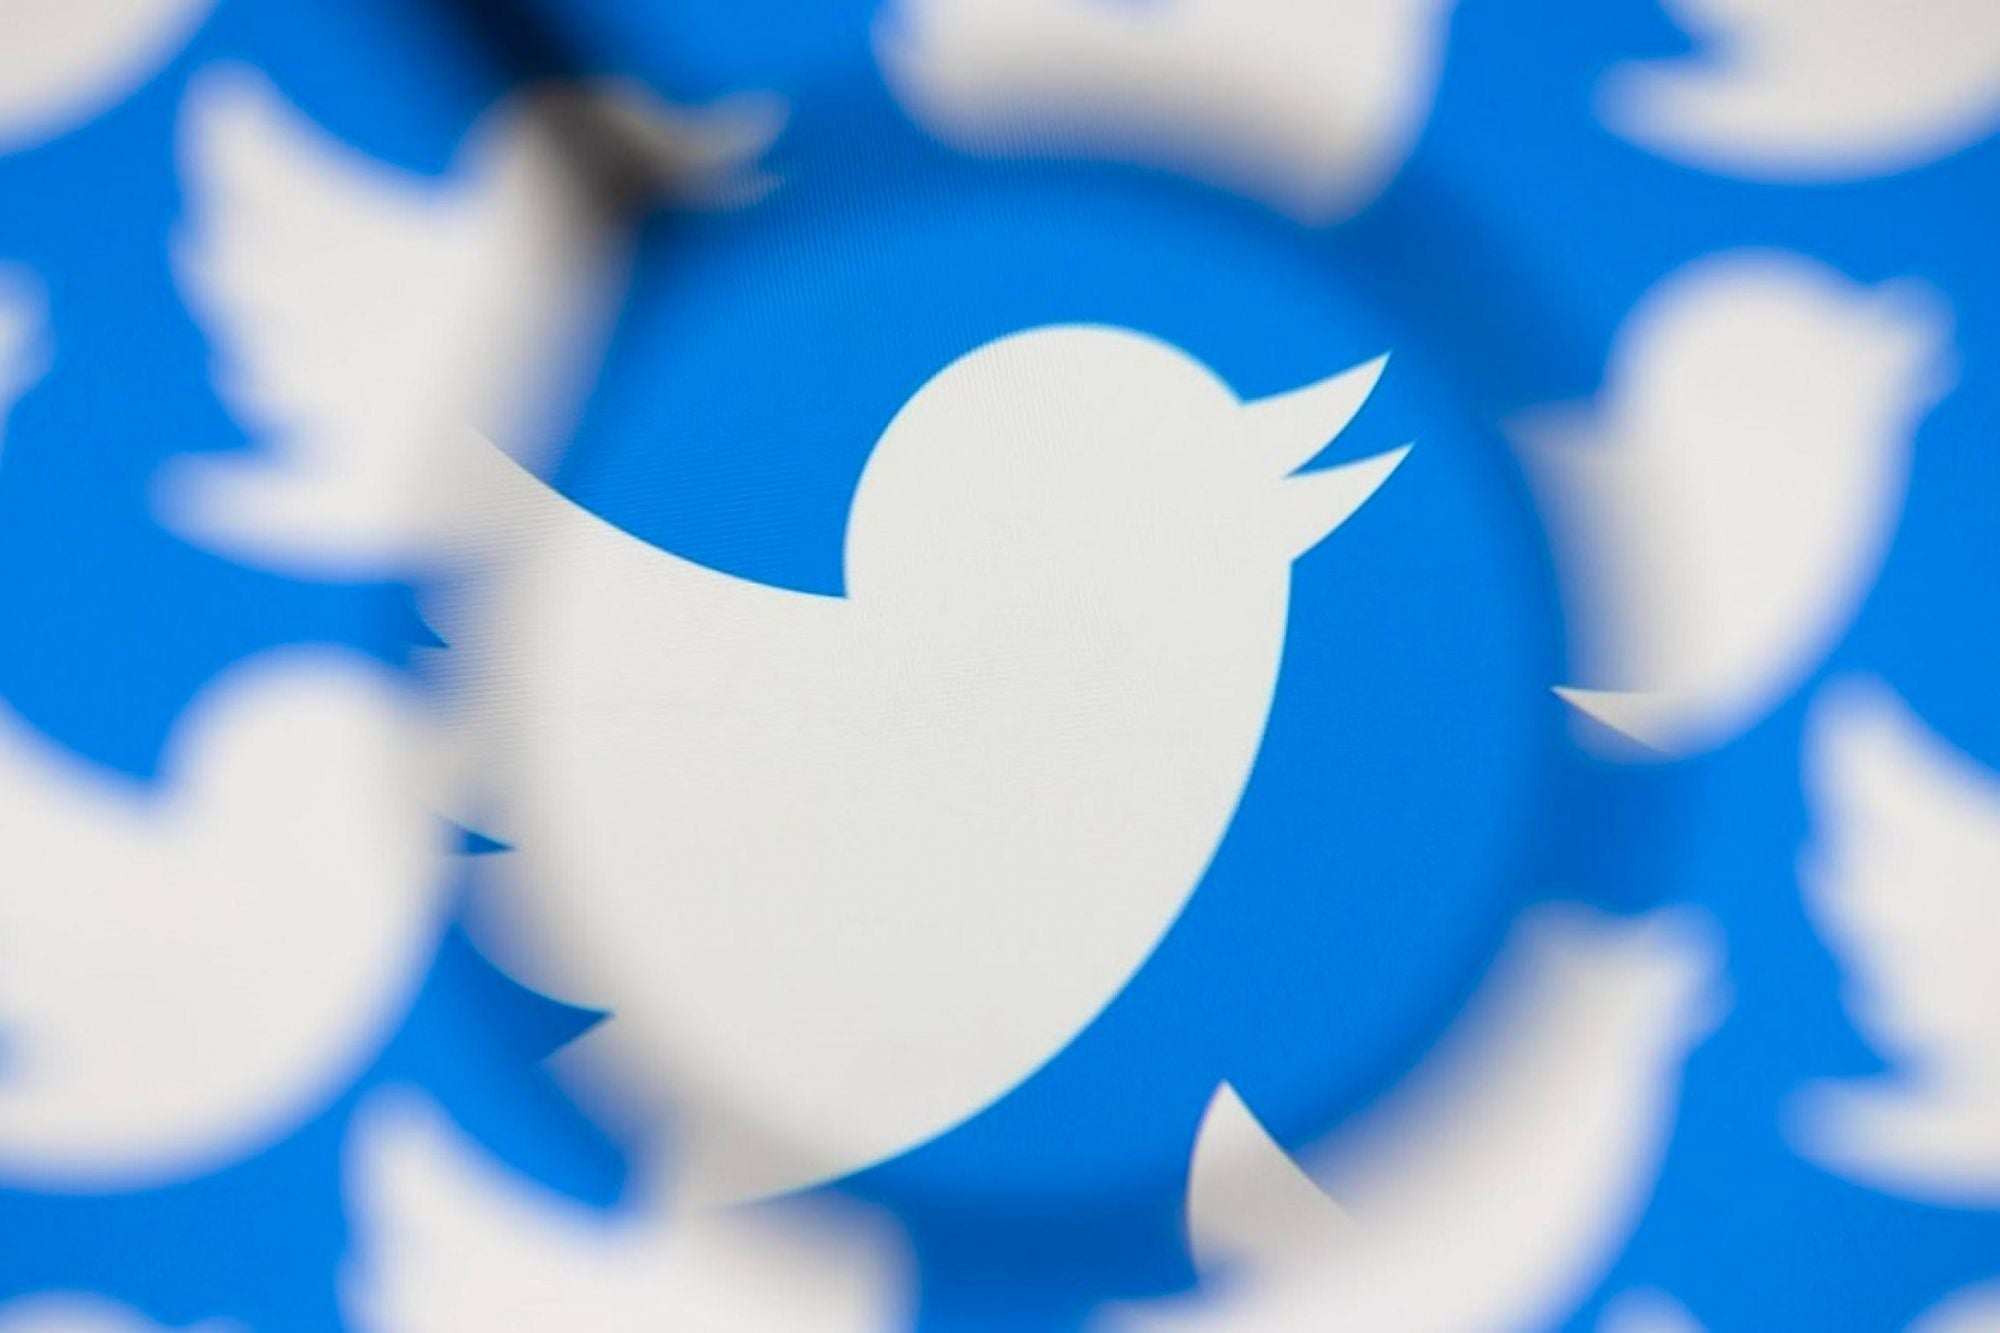 Twitter Moves to Curb COVID-19 Conspiracy Theories With Warnings, Labels